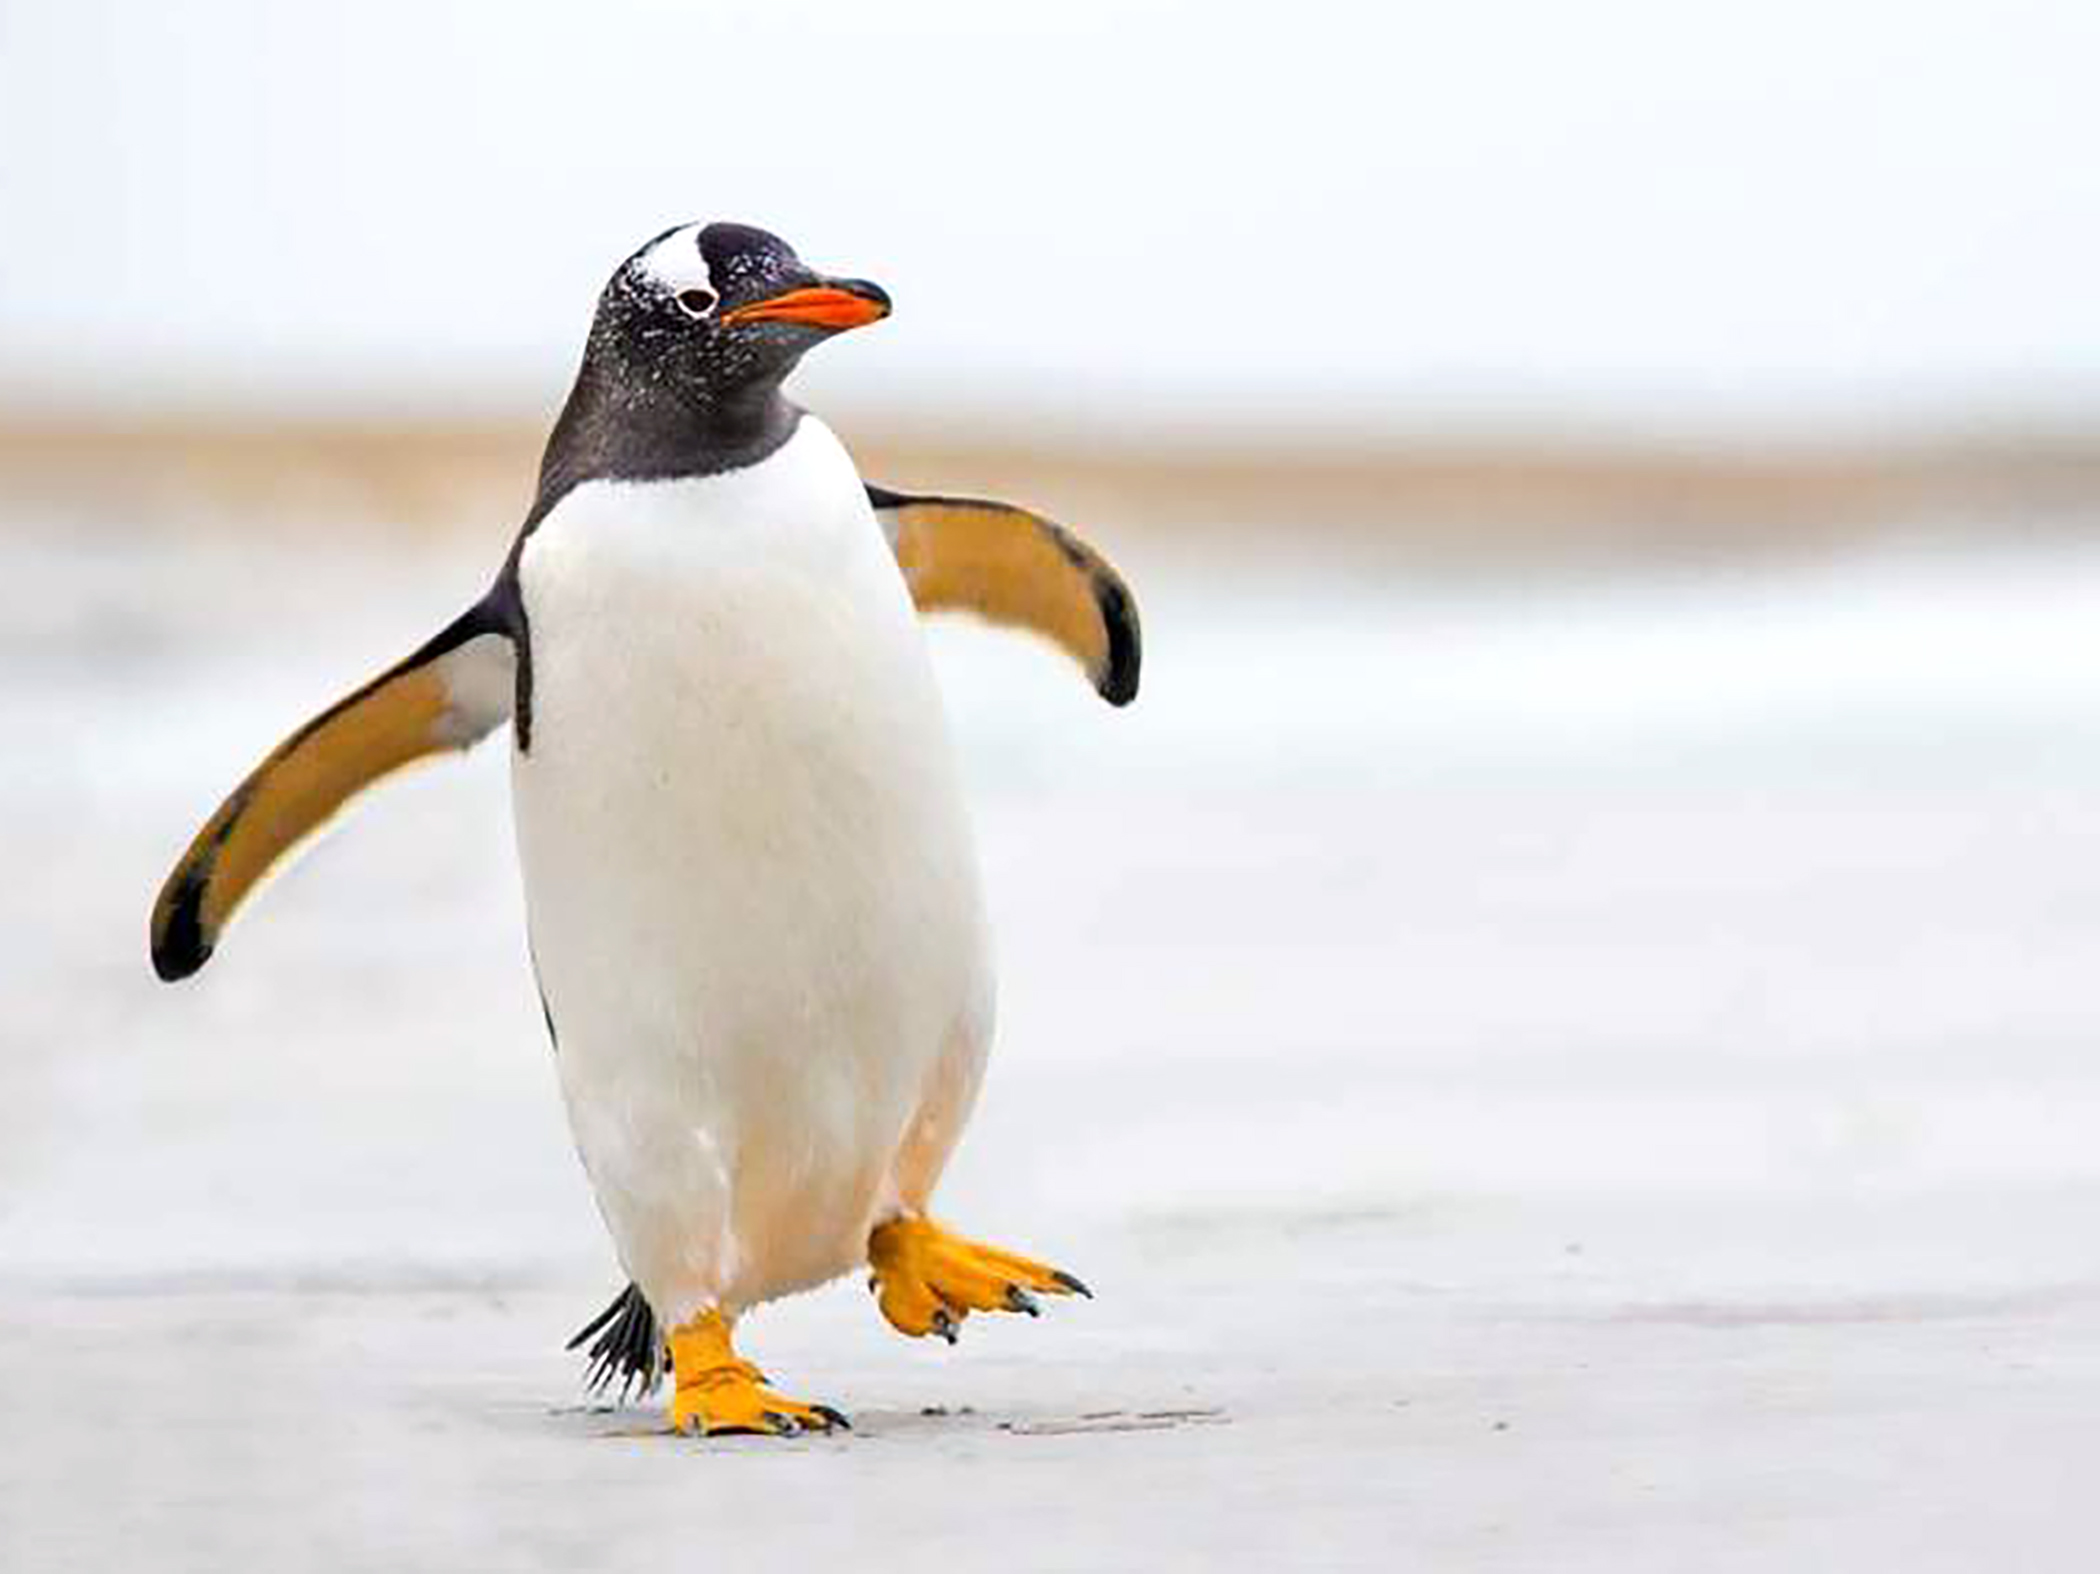 To stay safe on snow or ice, walk like a penguin | Morris Hospital